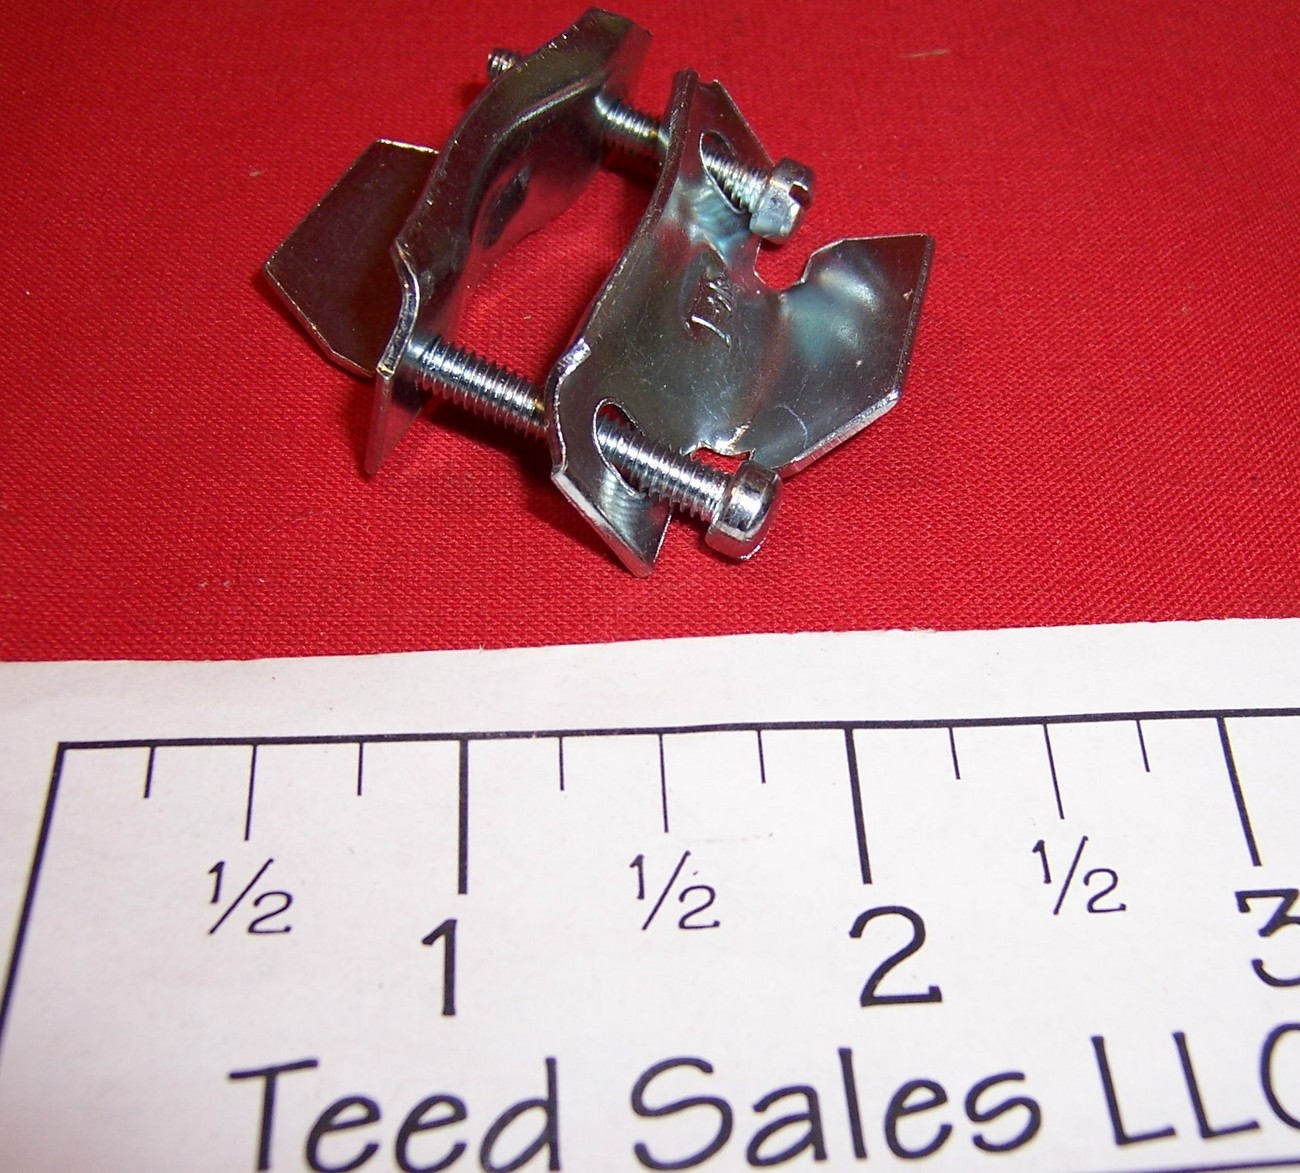 10 pack NM 2 piece Butterfly Clamp Connector L104T